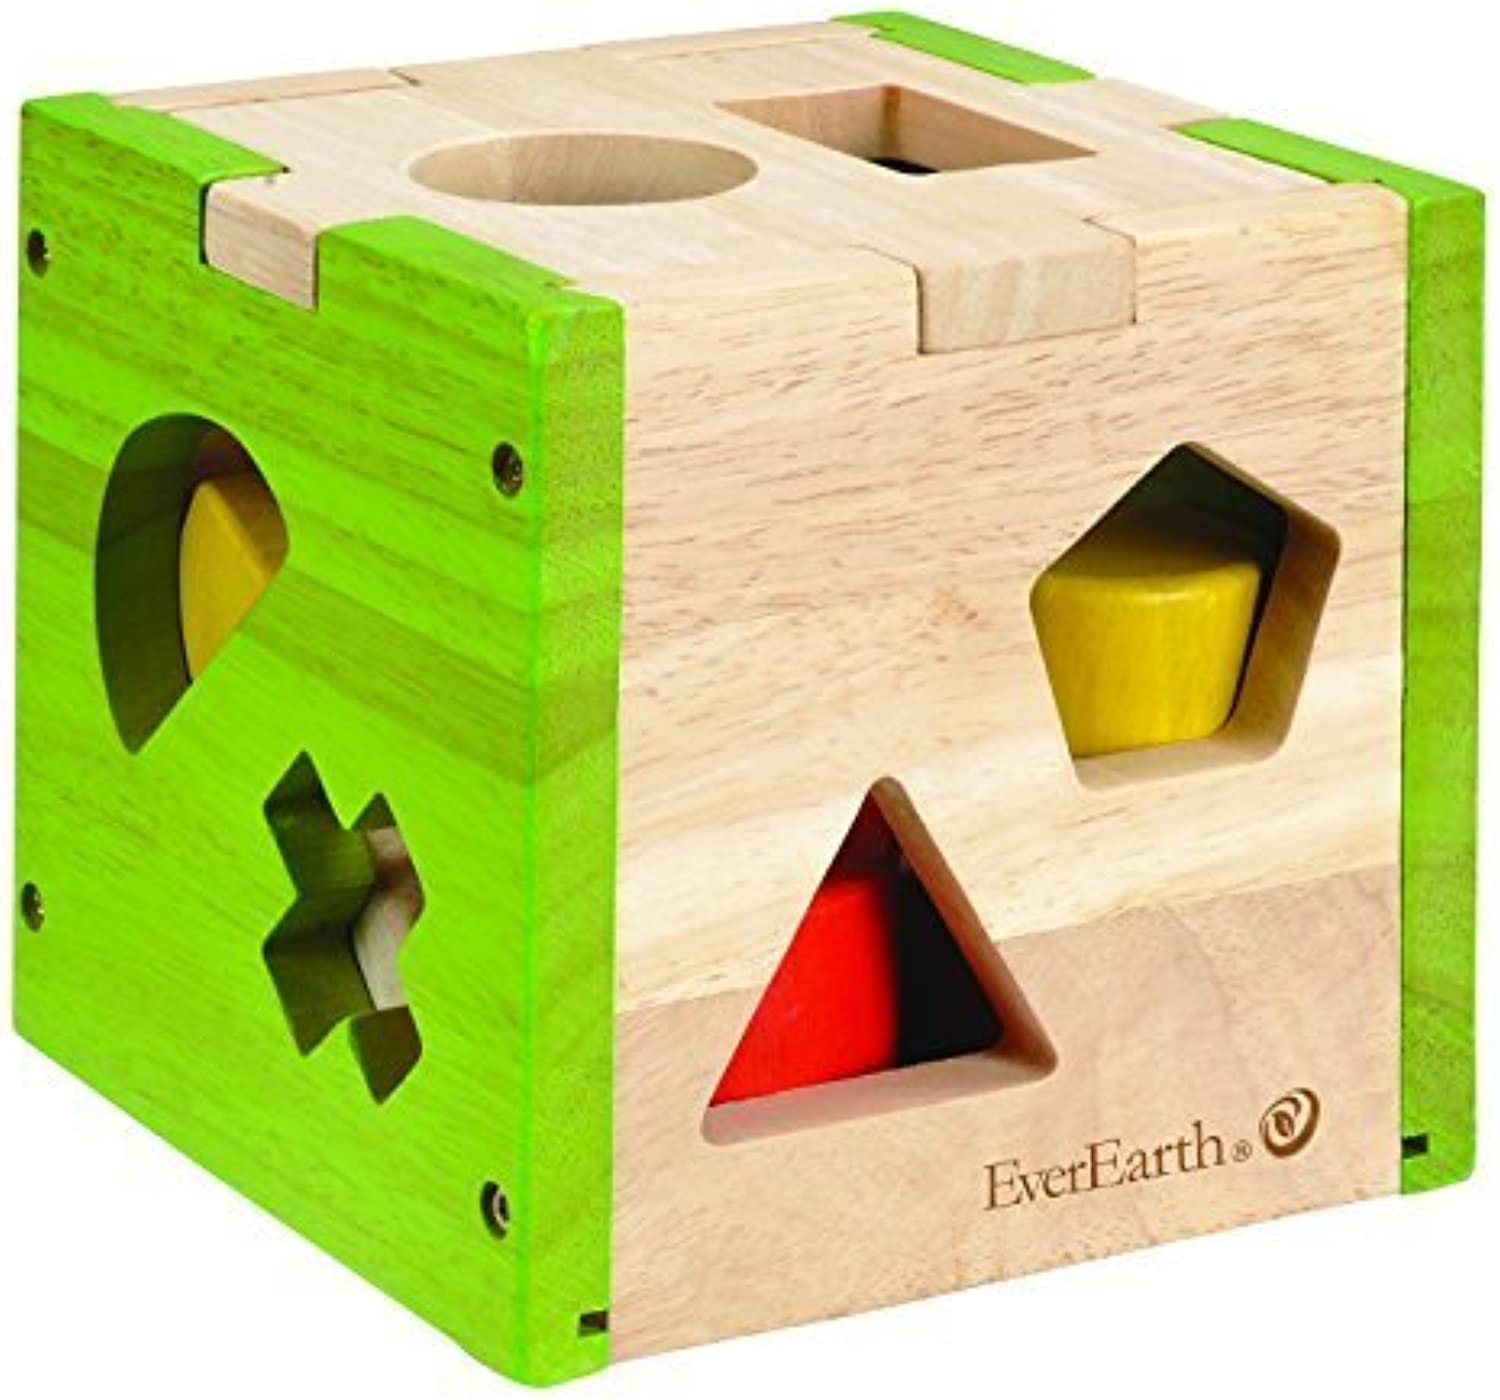 Everearth Shape Sorter Box by BabyCentre